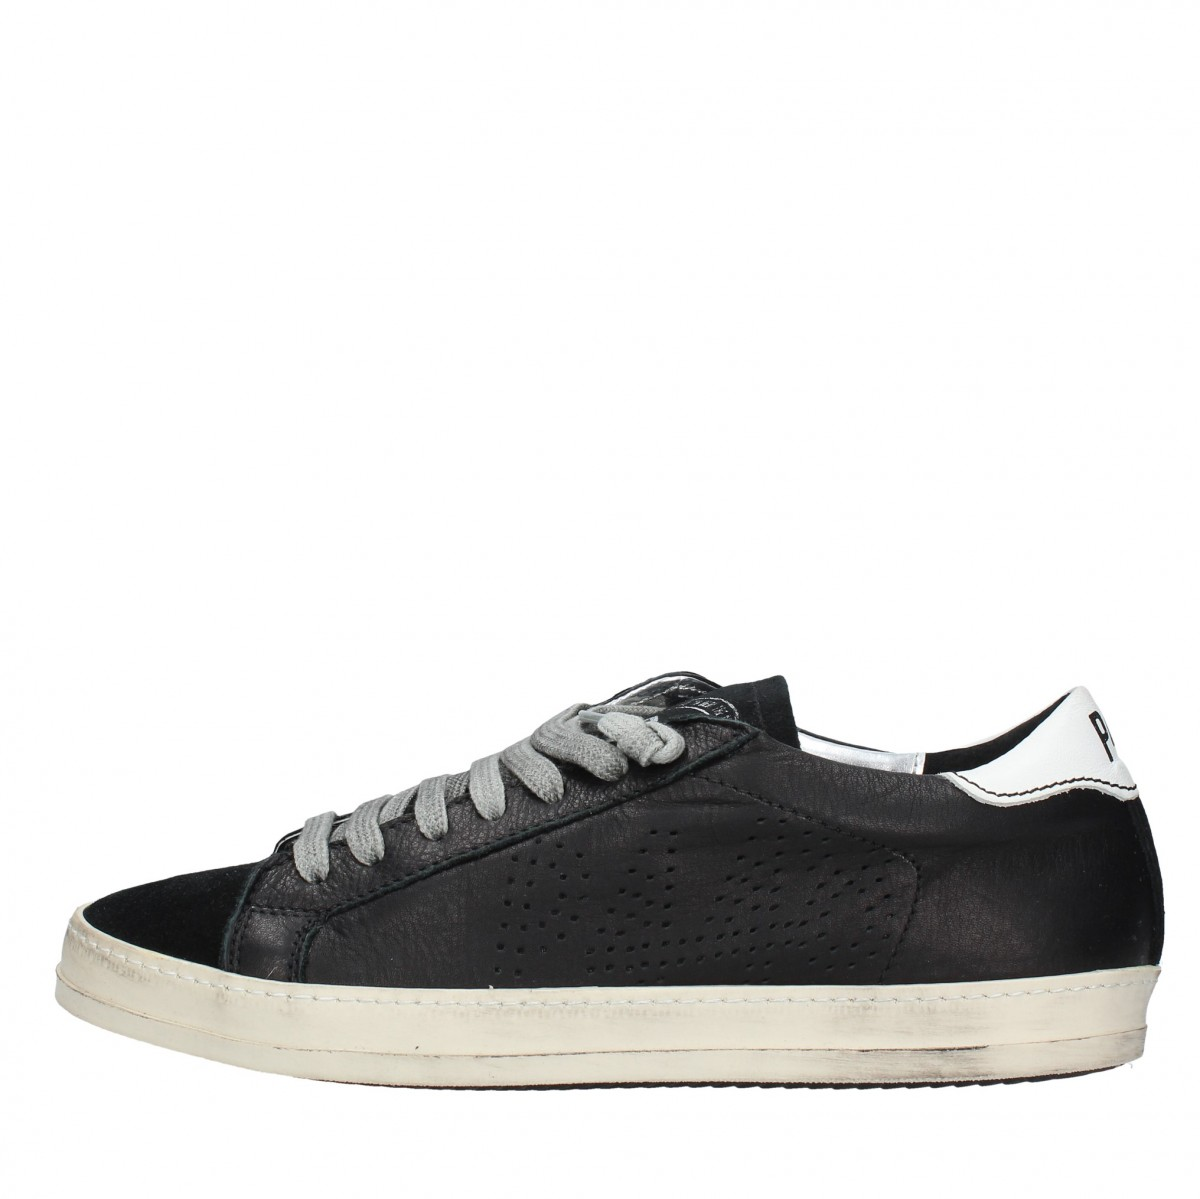 low priced 679fa ce6c3 Sneakers P448